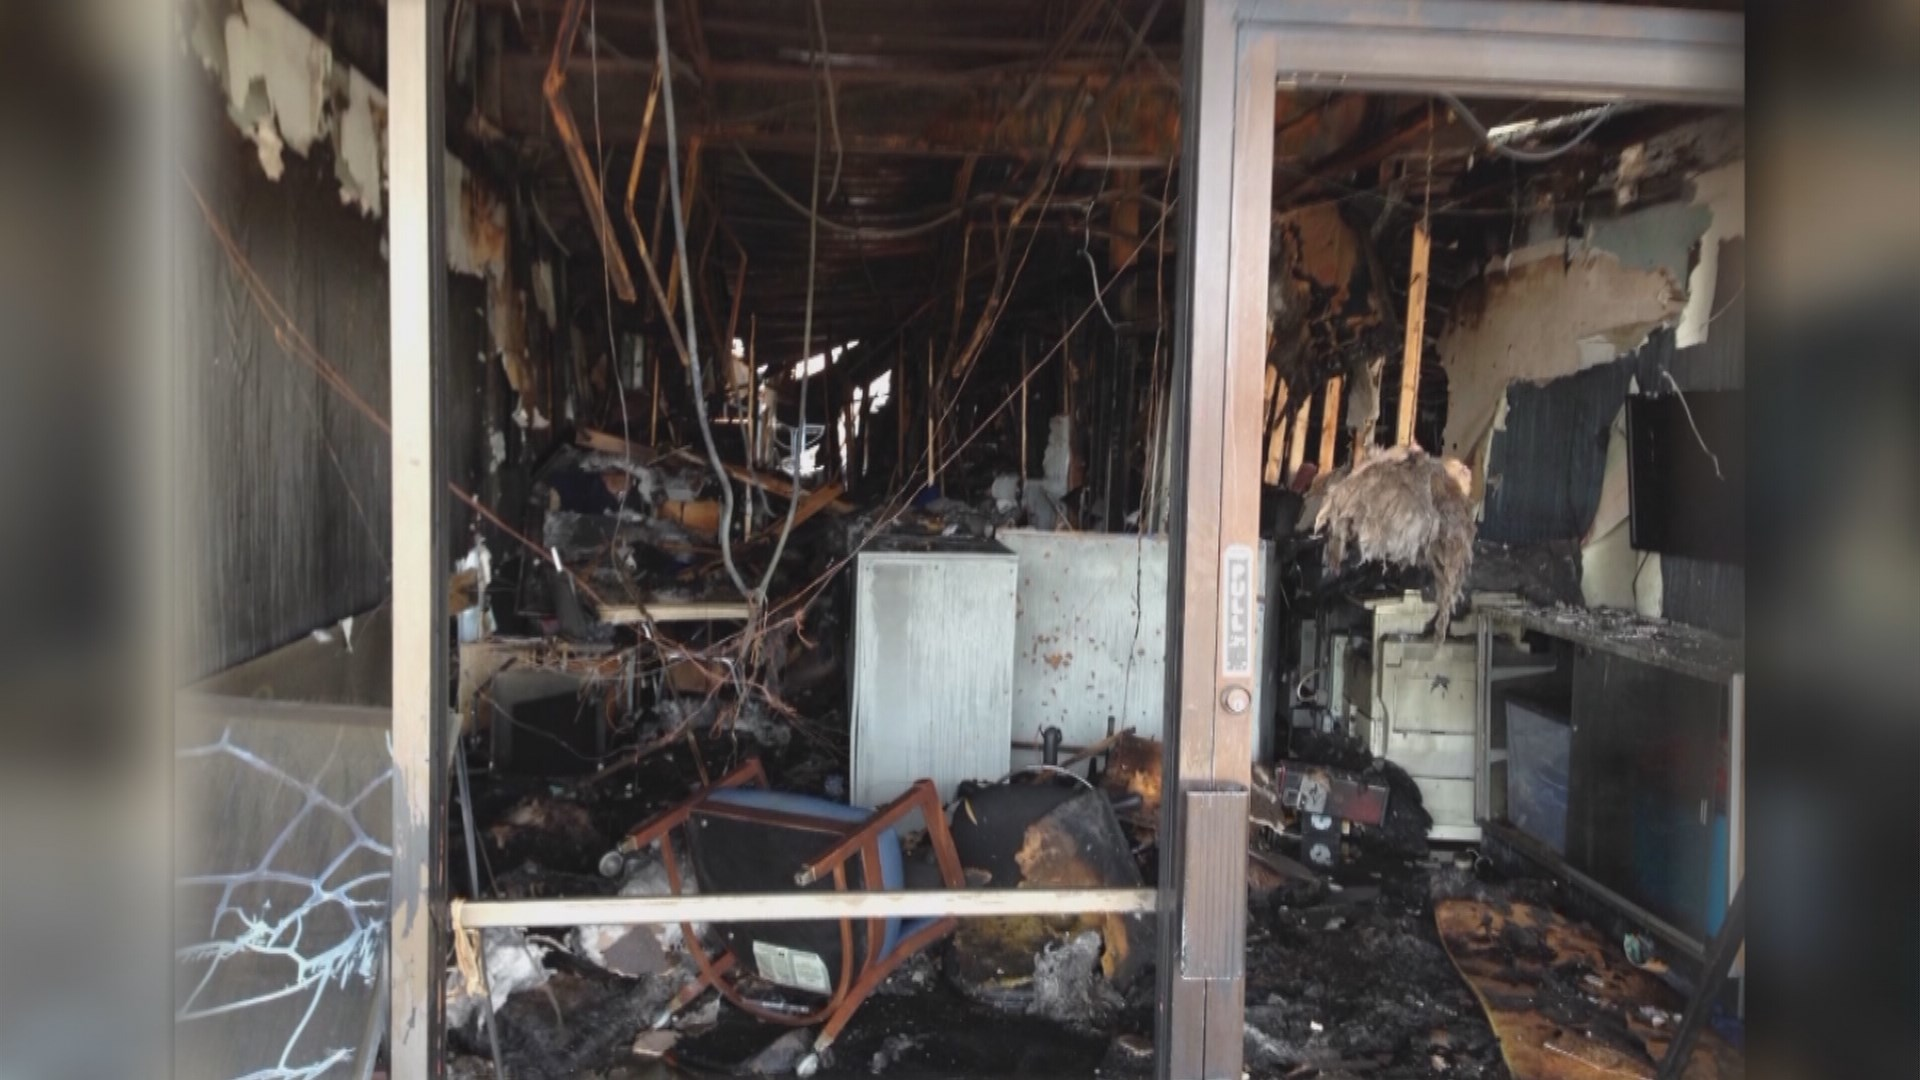 Computer Store Owner Left Devastated By Ingram Square Fire